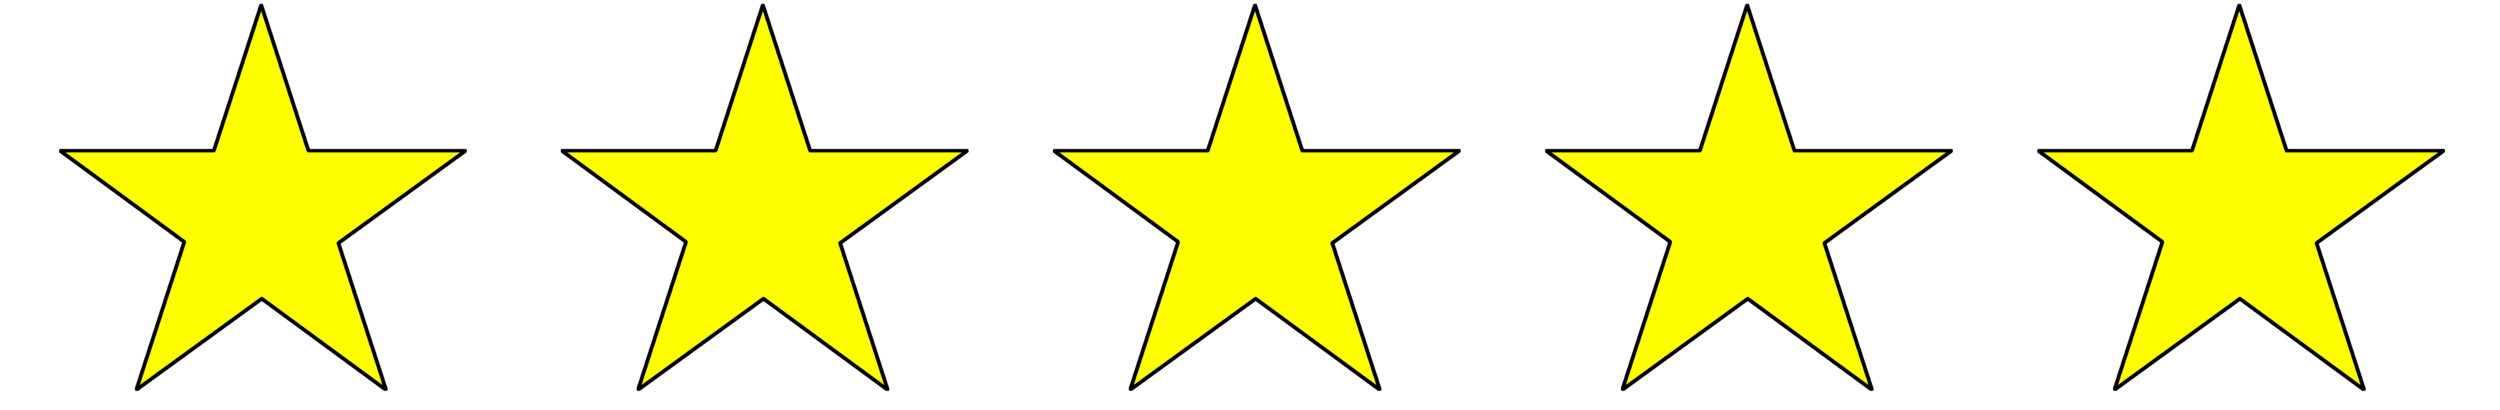 Star gold3.png